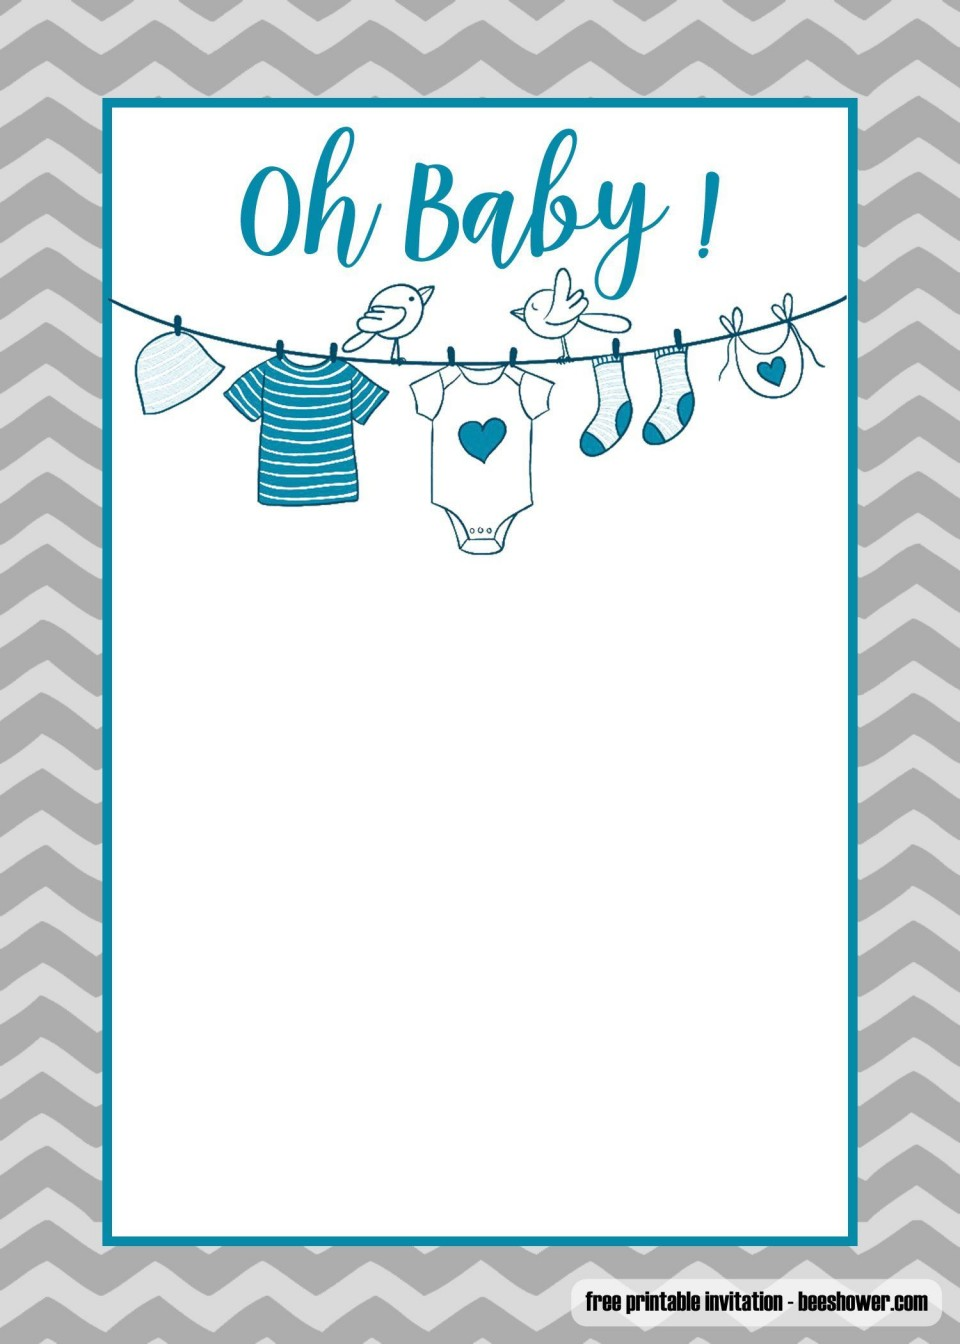 008 Singular Free Baby Shower Card Template For Word Image 960